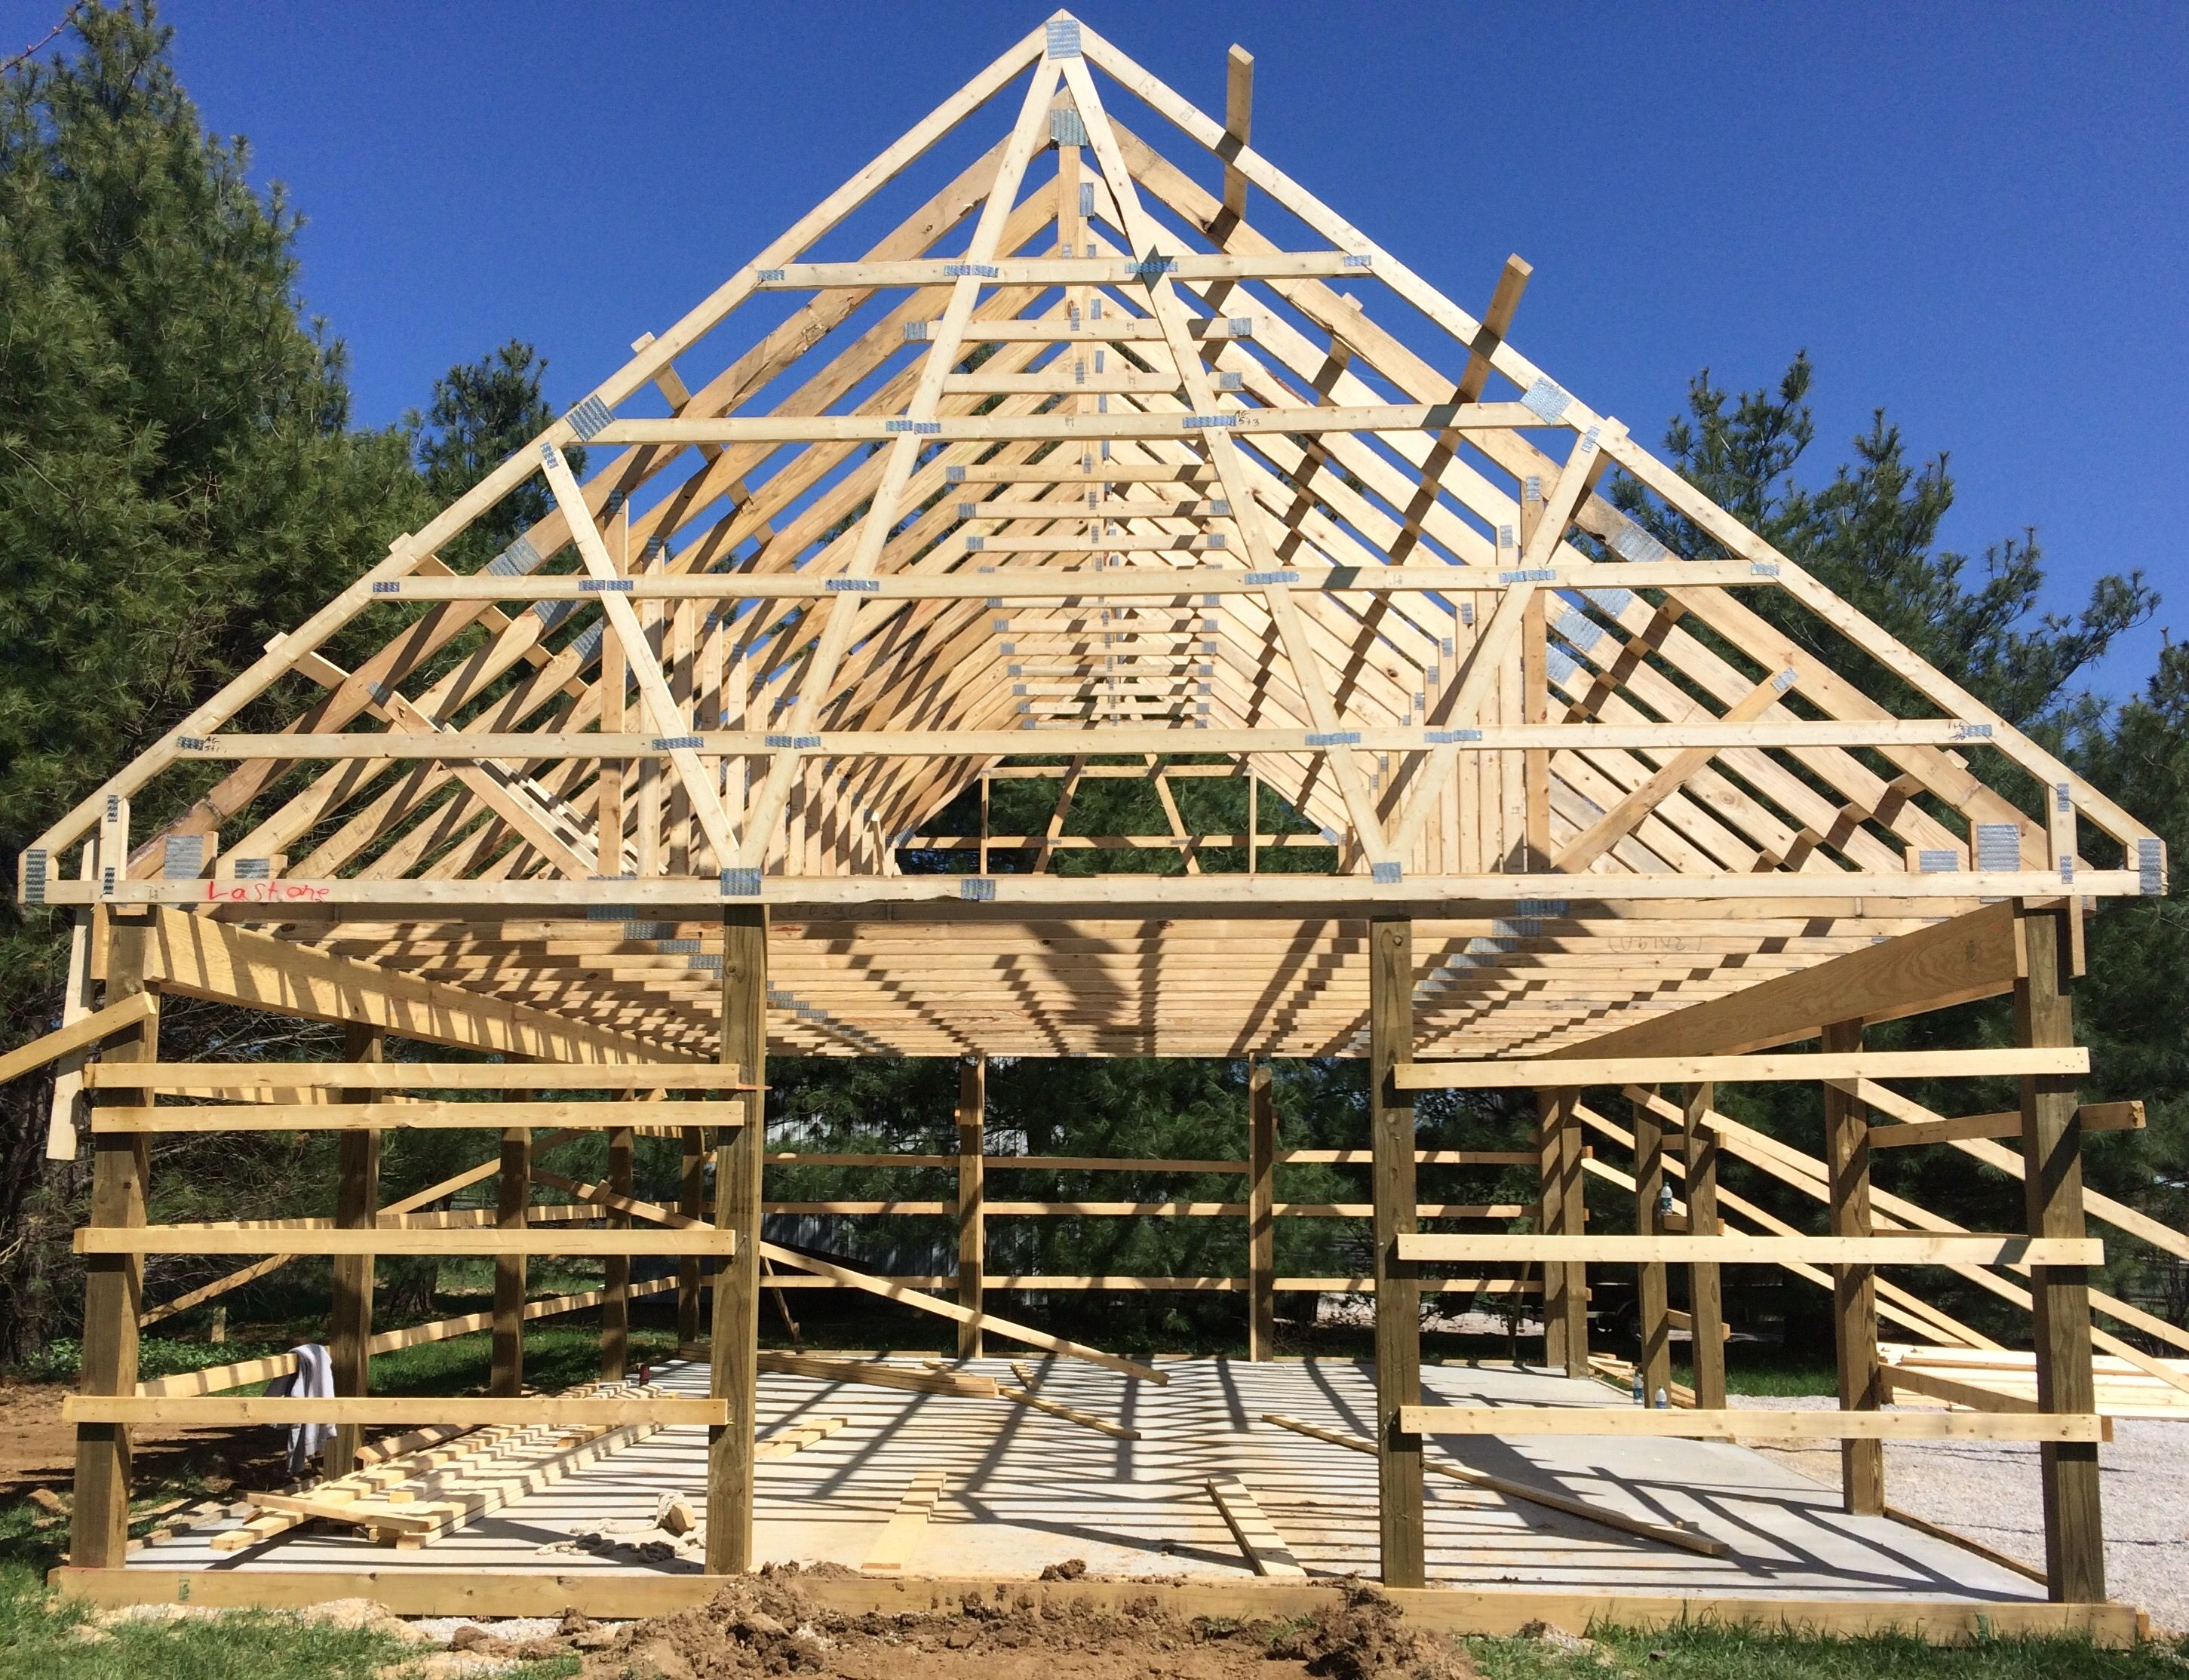 Framing Of 24 X 32 Pole Barn With 10 12 Pitch Roof And Attic Trusses This Will Create A 32 X 12 X Pole Barn Kits Prices Pole Barn House Plans Pole Barn Kits